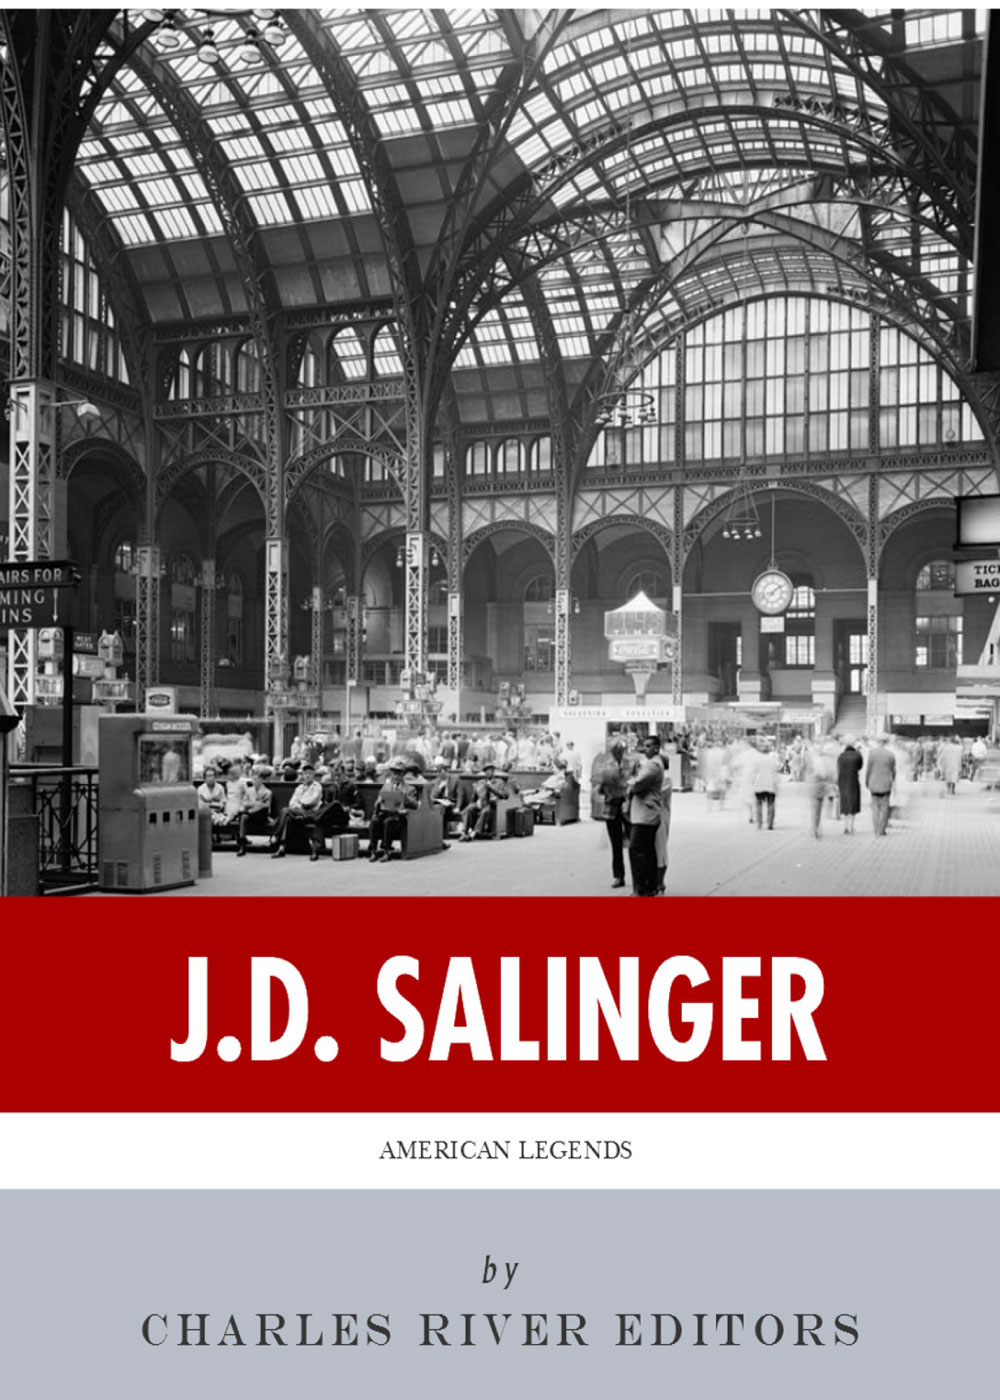 American Legends: The Life of J.D. Salinger